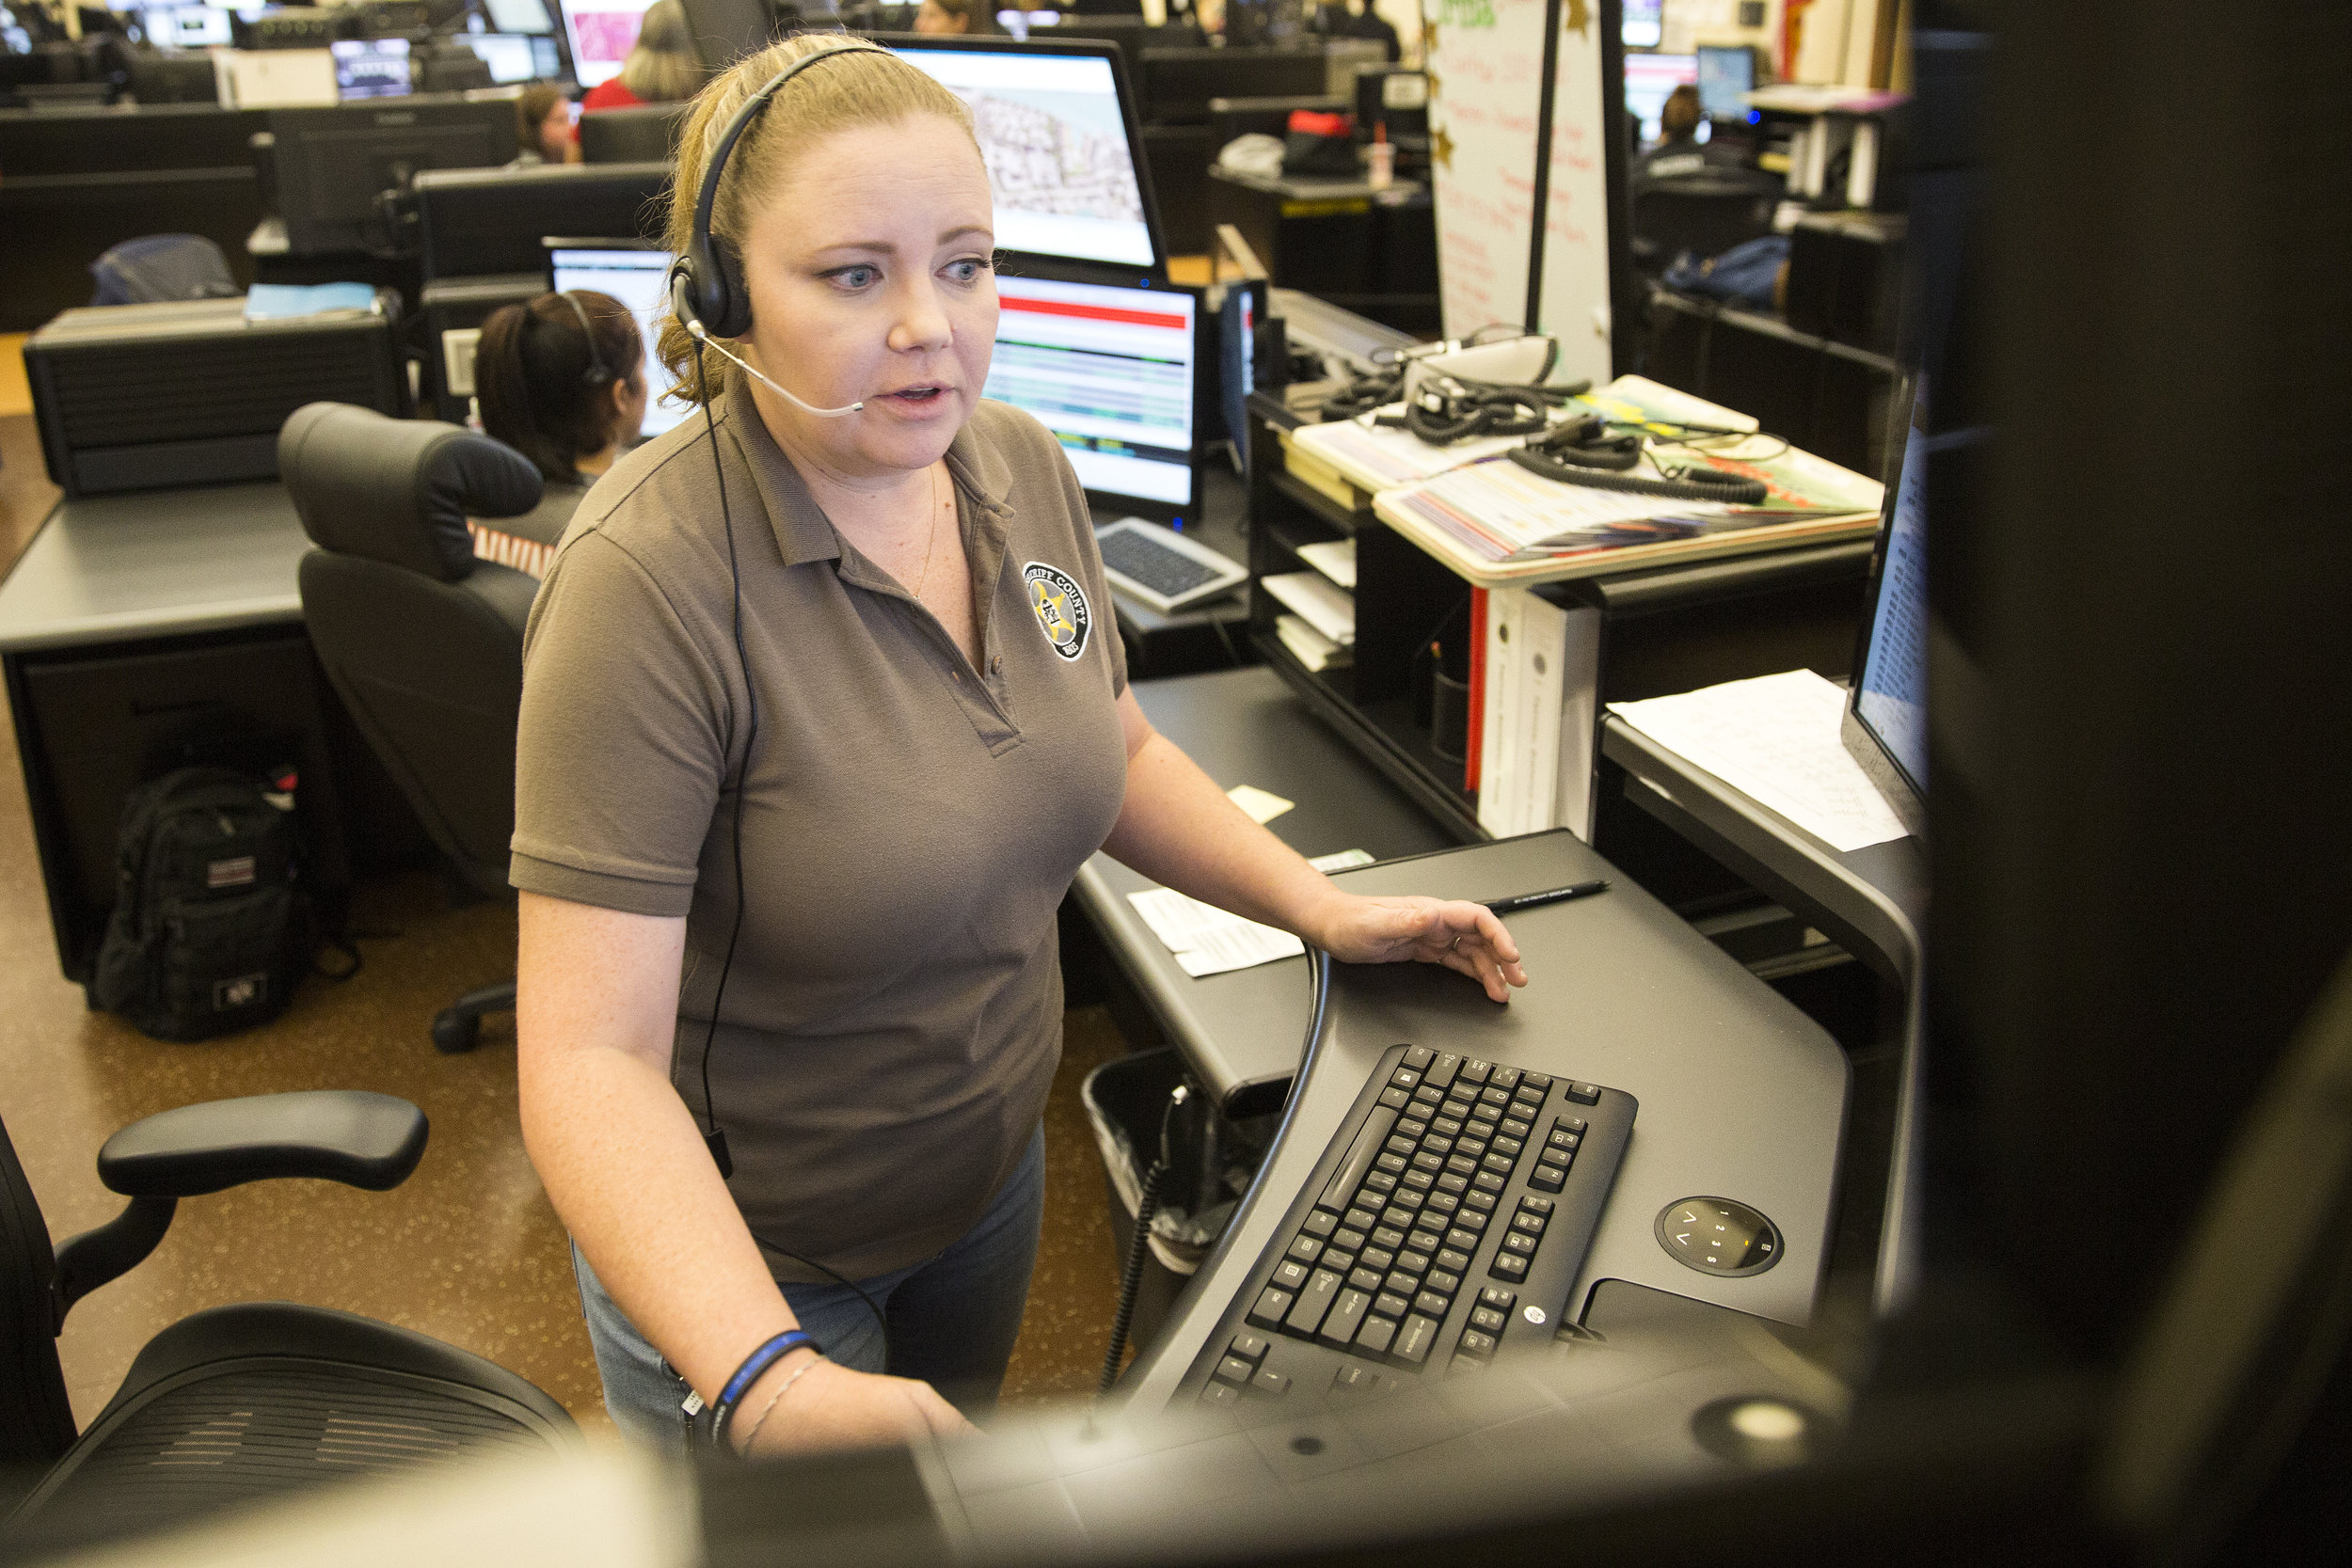 Dispatcher Mandy Ptak came from Baldwin County in Georgia to help with the high volume of emergency calls received in the wake of Hurricane Irma at the Collier County Emergency Services Center on Friday September 22, 2017.